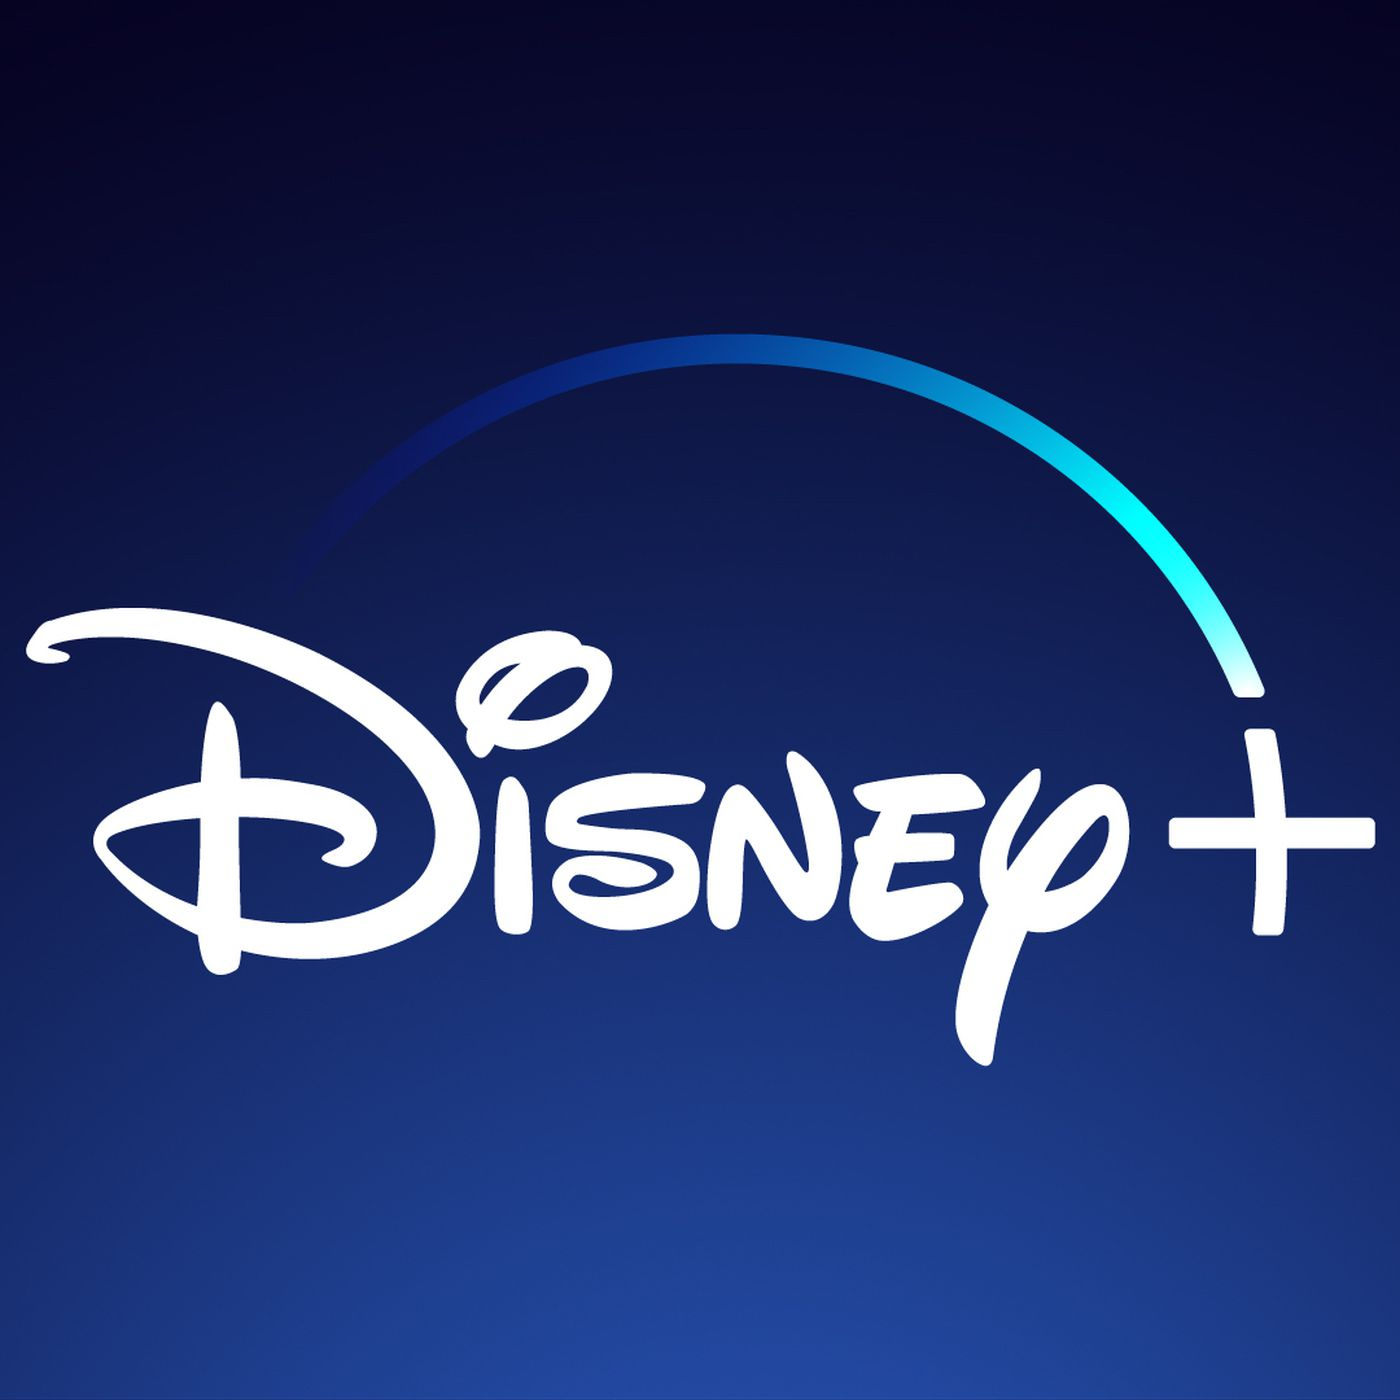 Disney+ reached more than 116M subscribers in less than two years